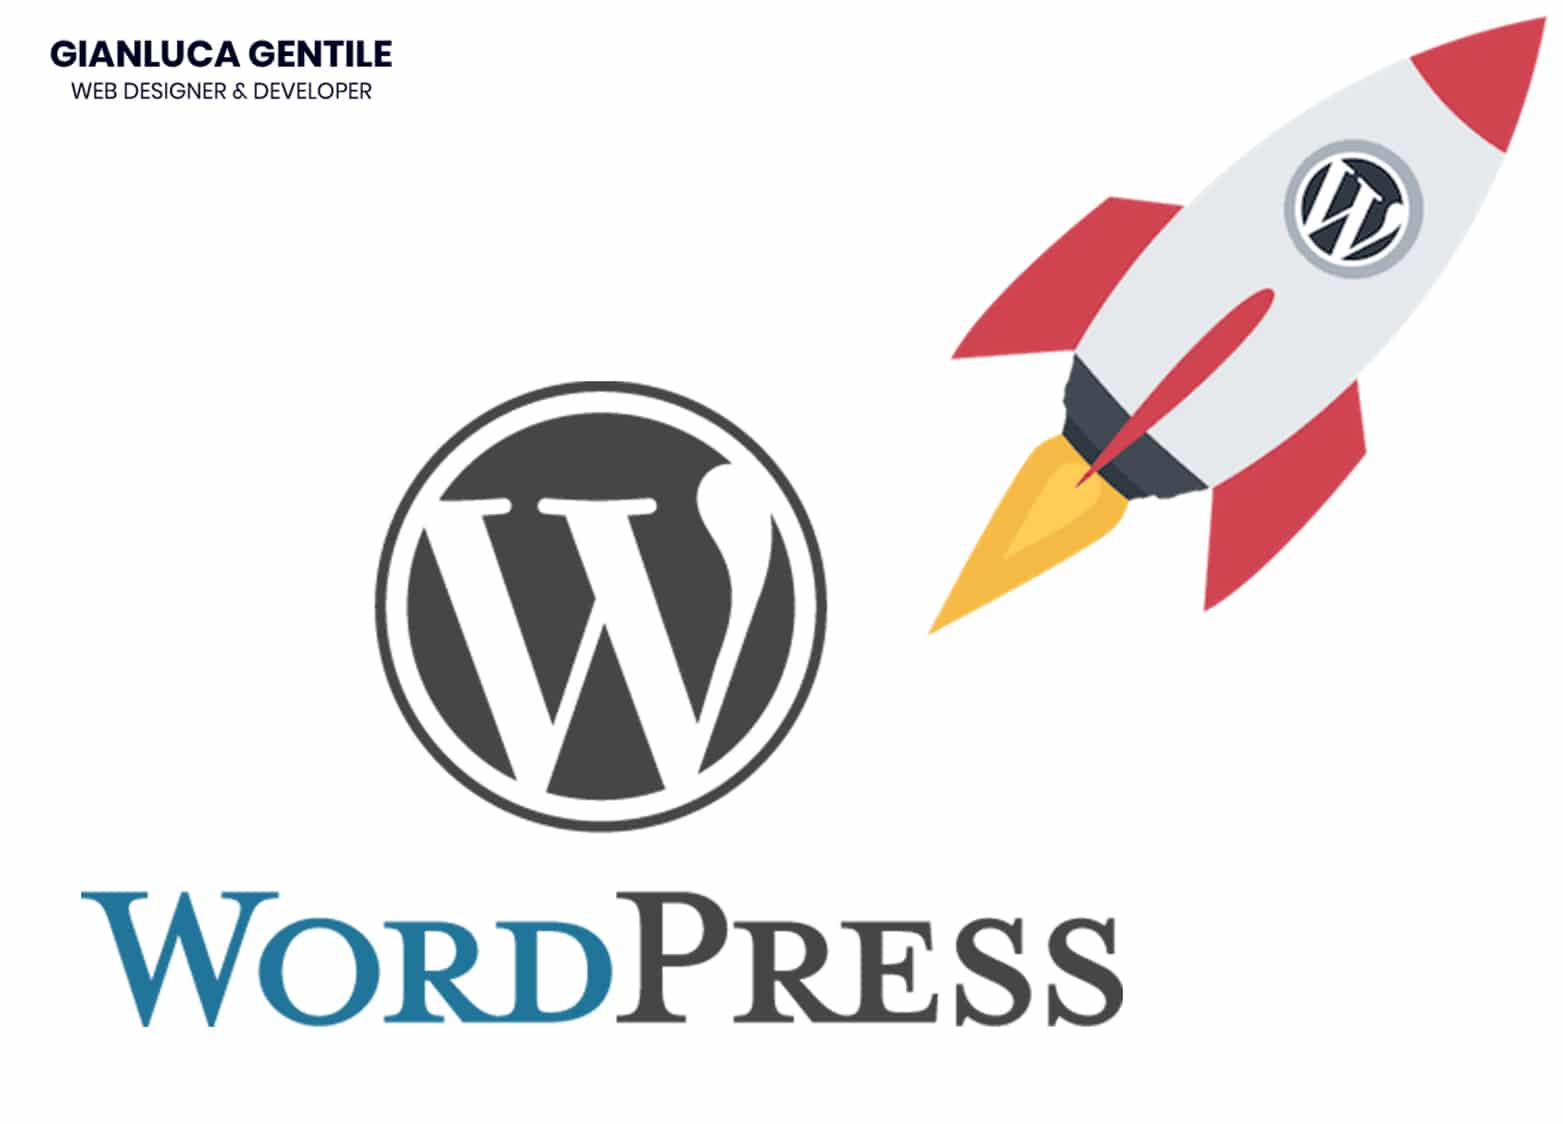 velocizzare wordpress - Come velocizzare Wordpress la guida completa - Come Velocizzare Wordpress